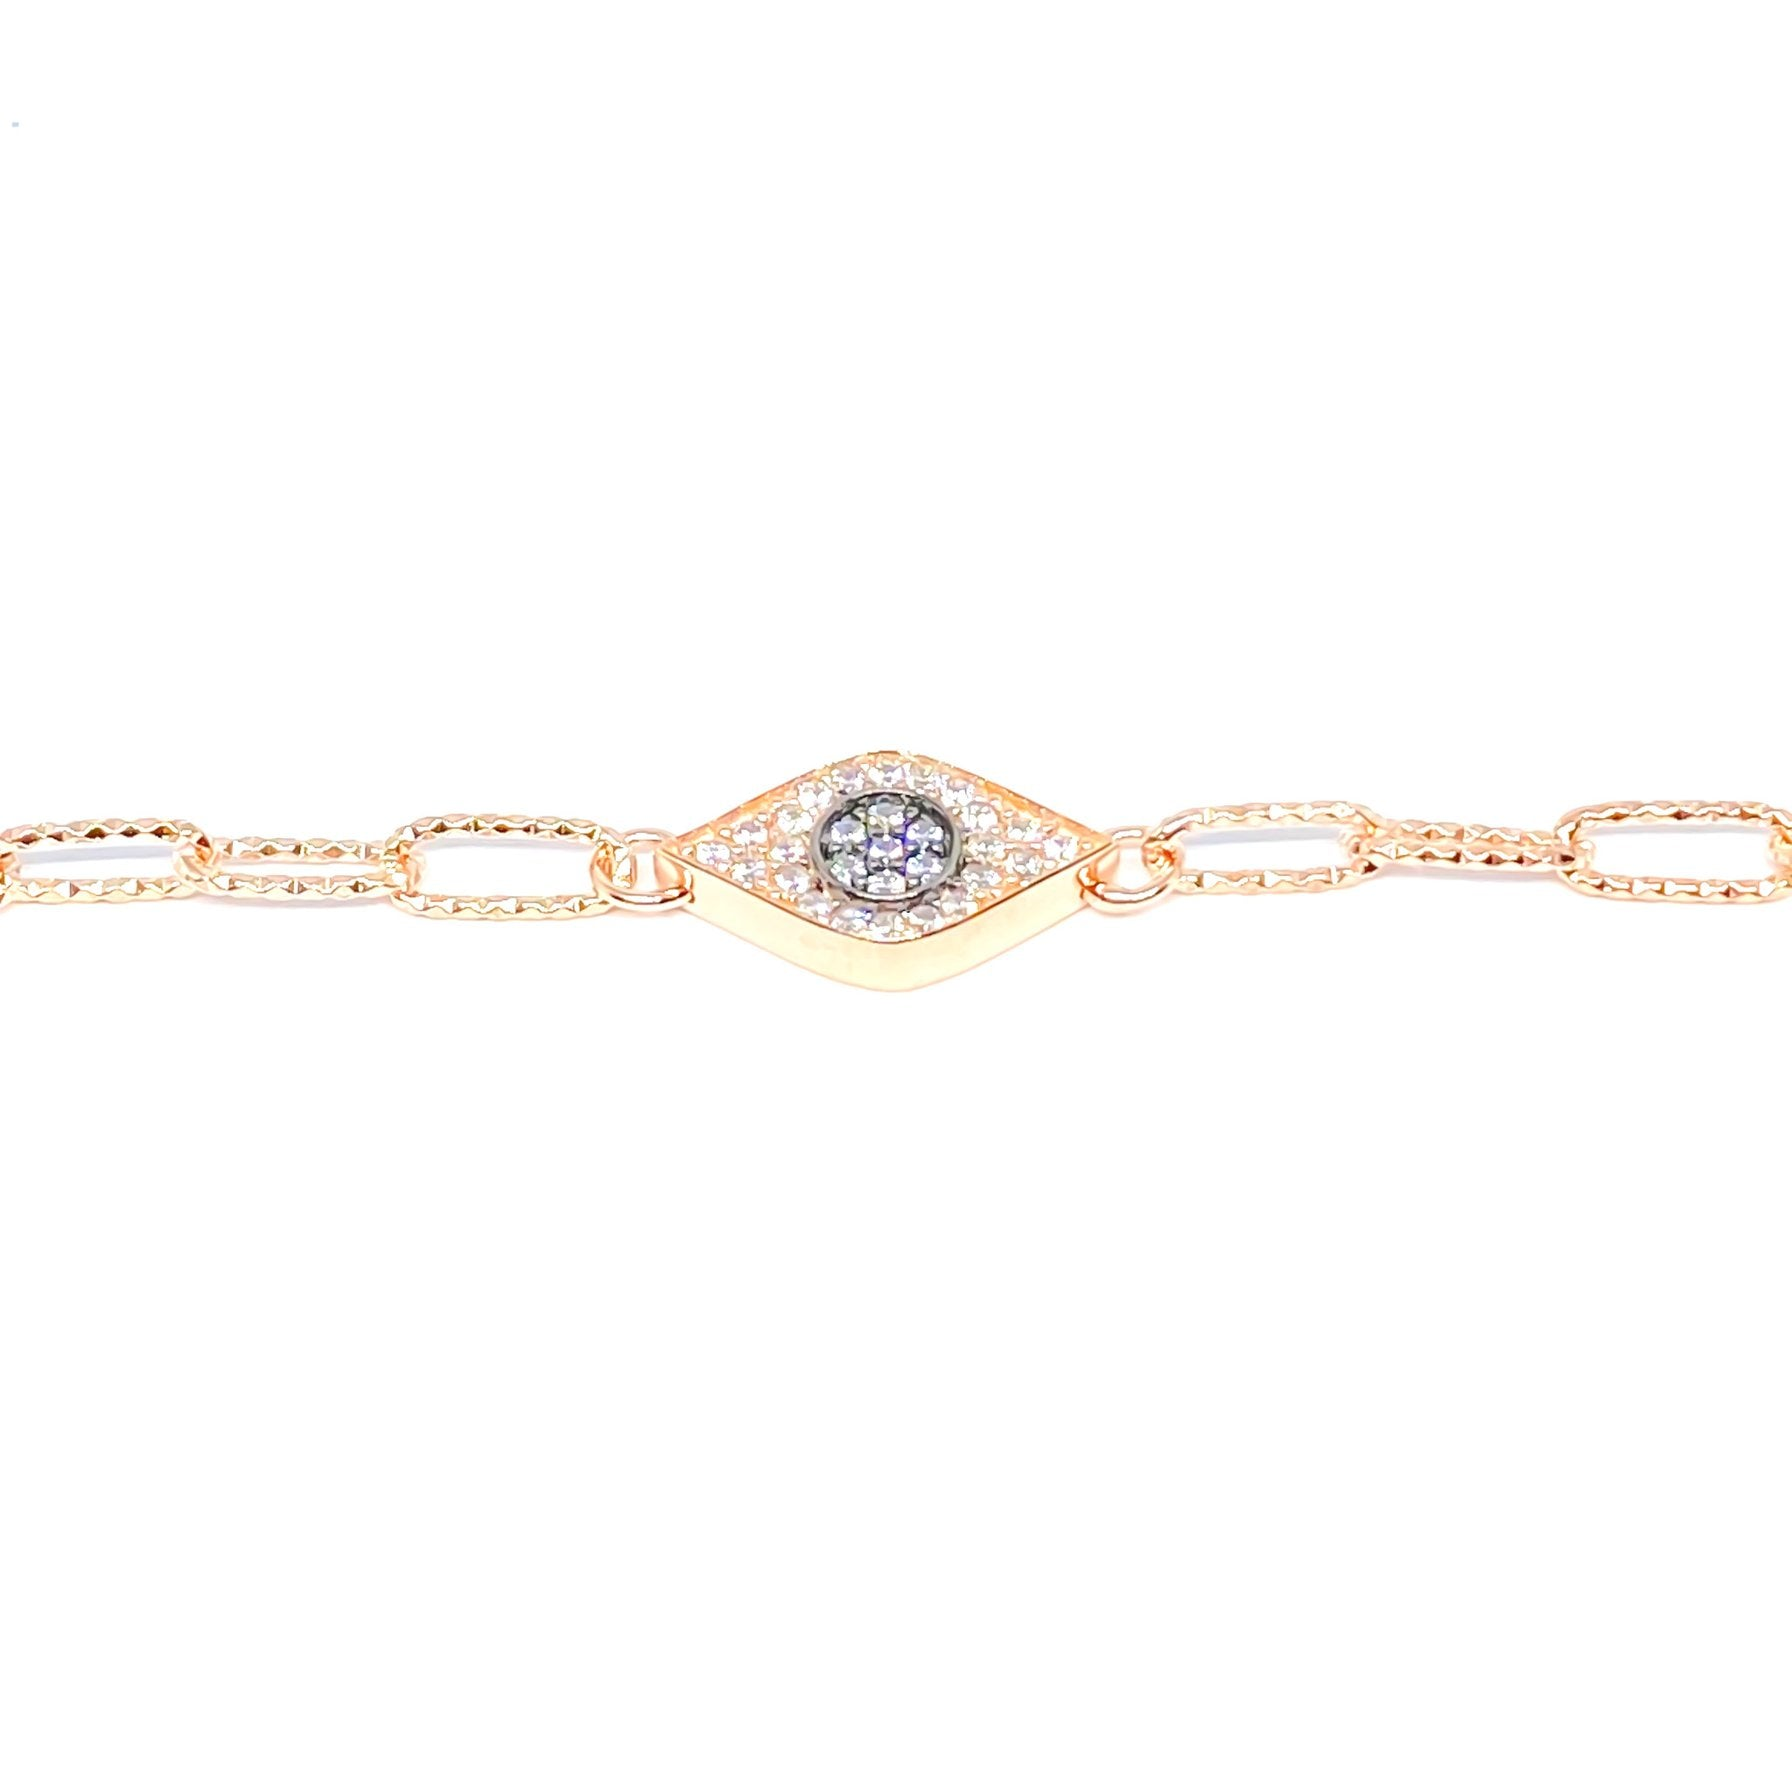 Chio Drawn Chain Bracelet